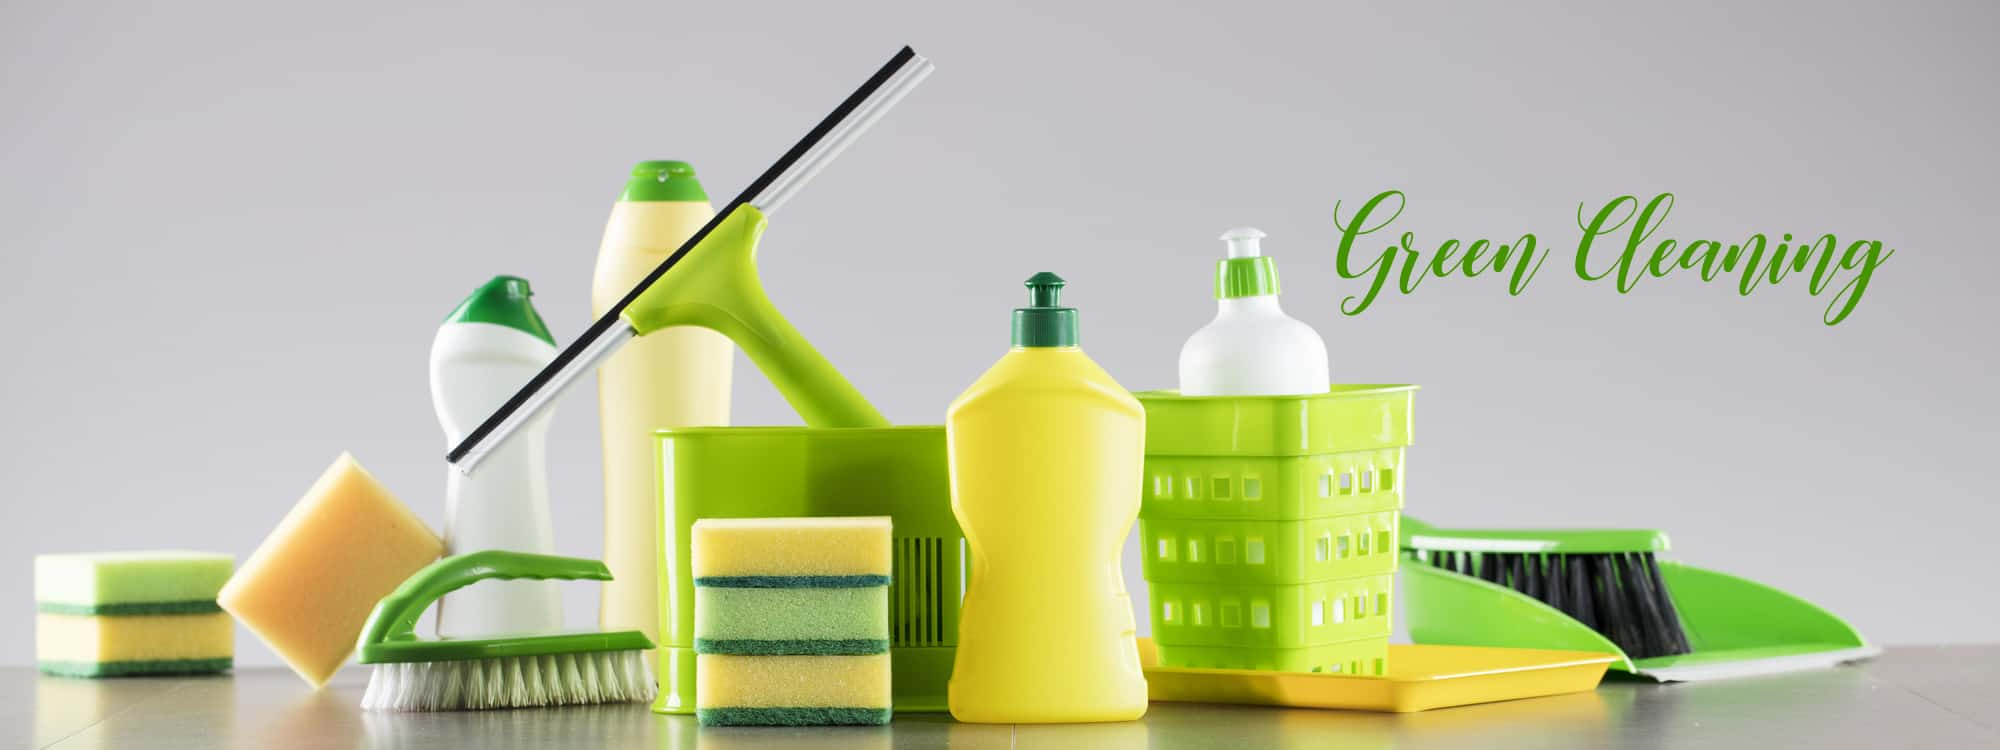 Green Cleaning | Modern Maids Cleaning